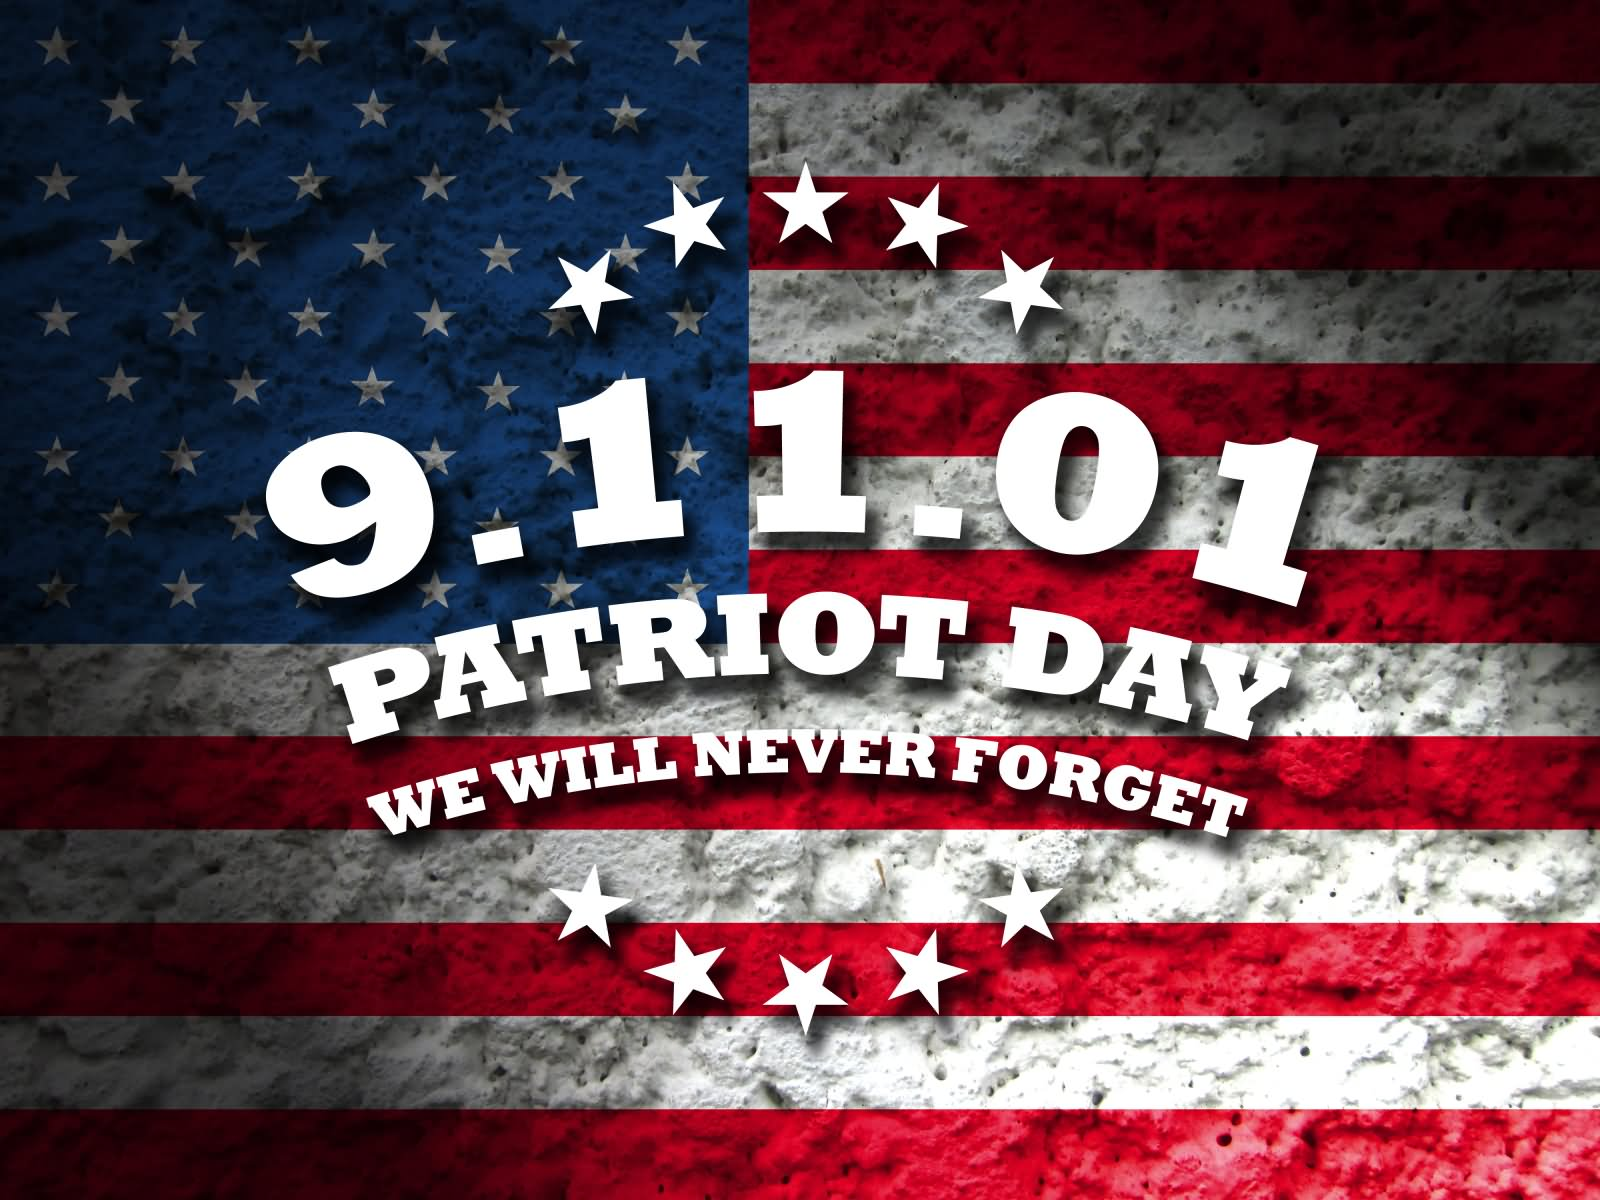 9-11-01 Patriot Day We Will Never Forget